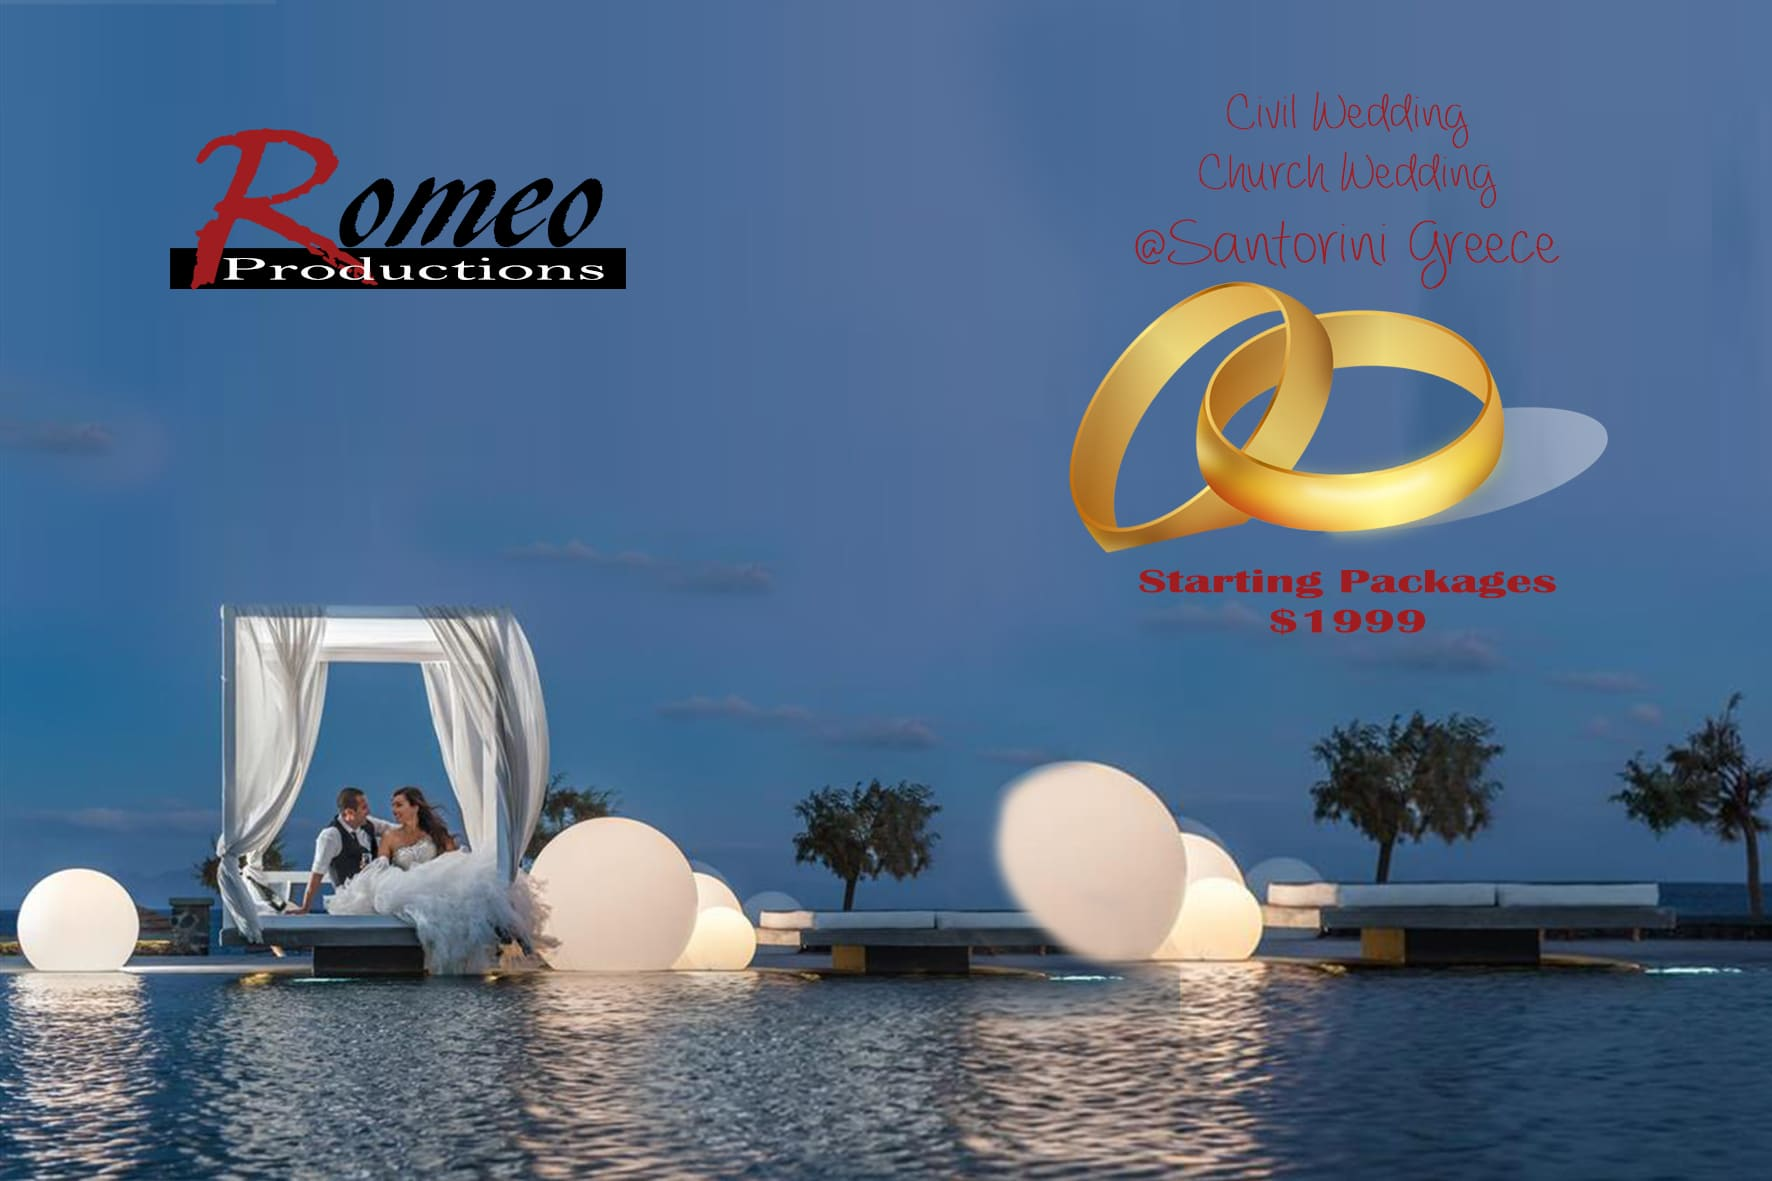 Santorini Wedding Package